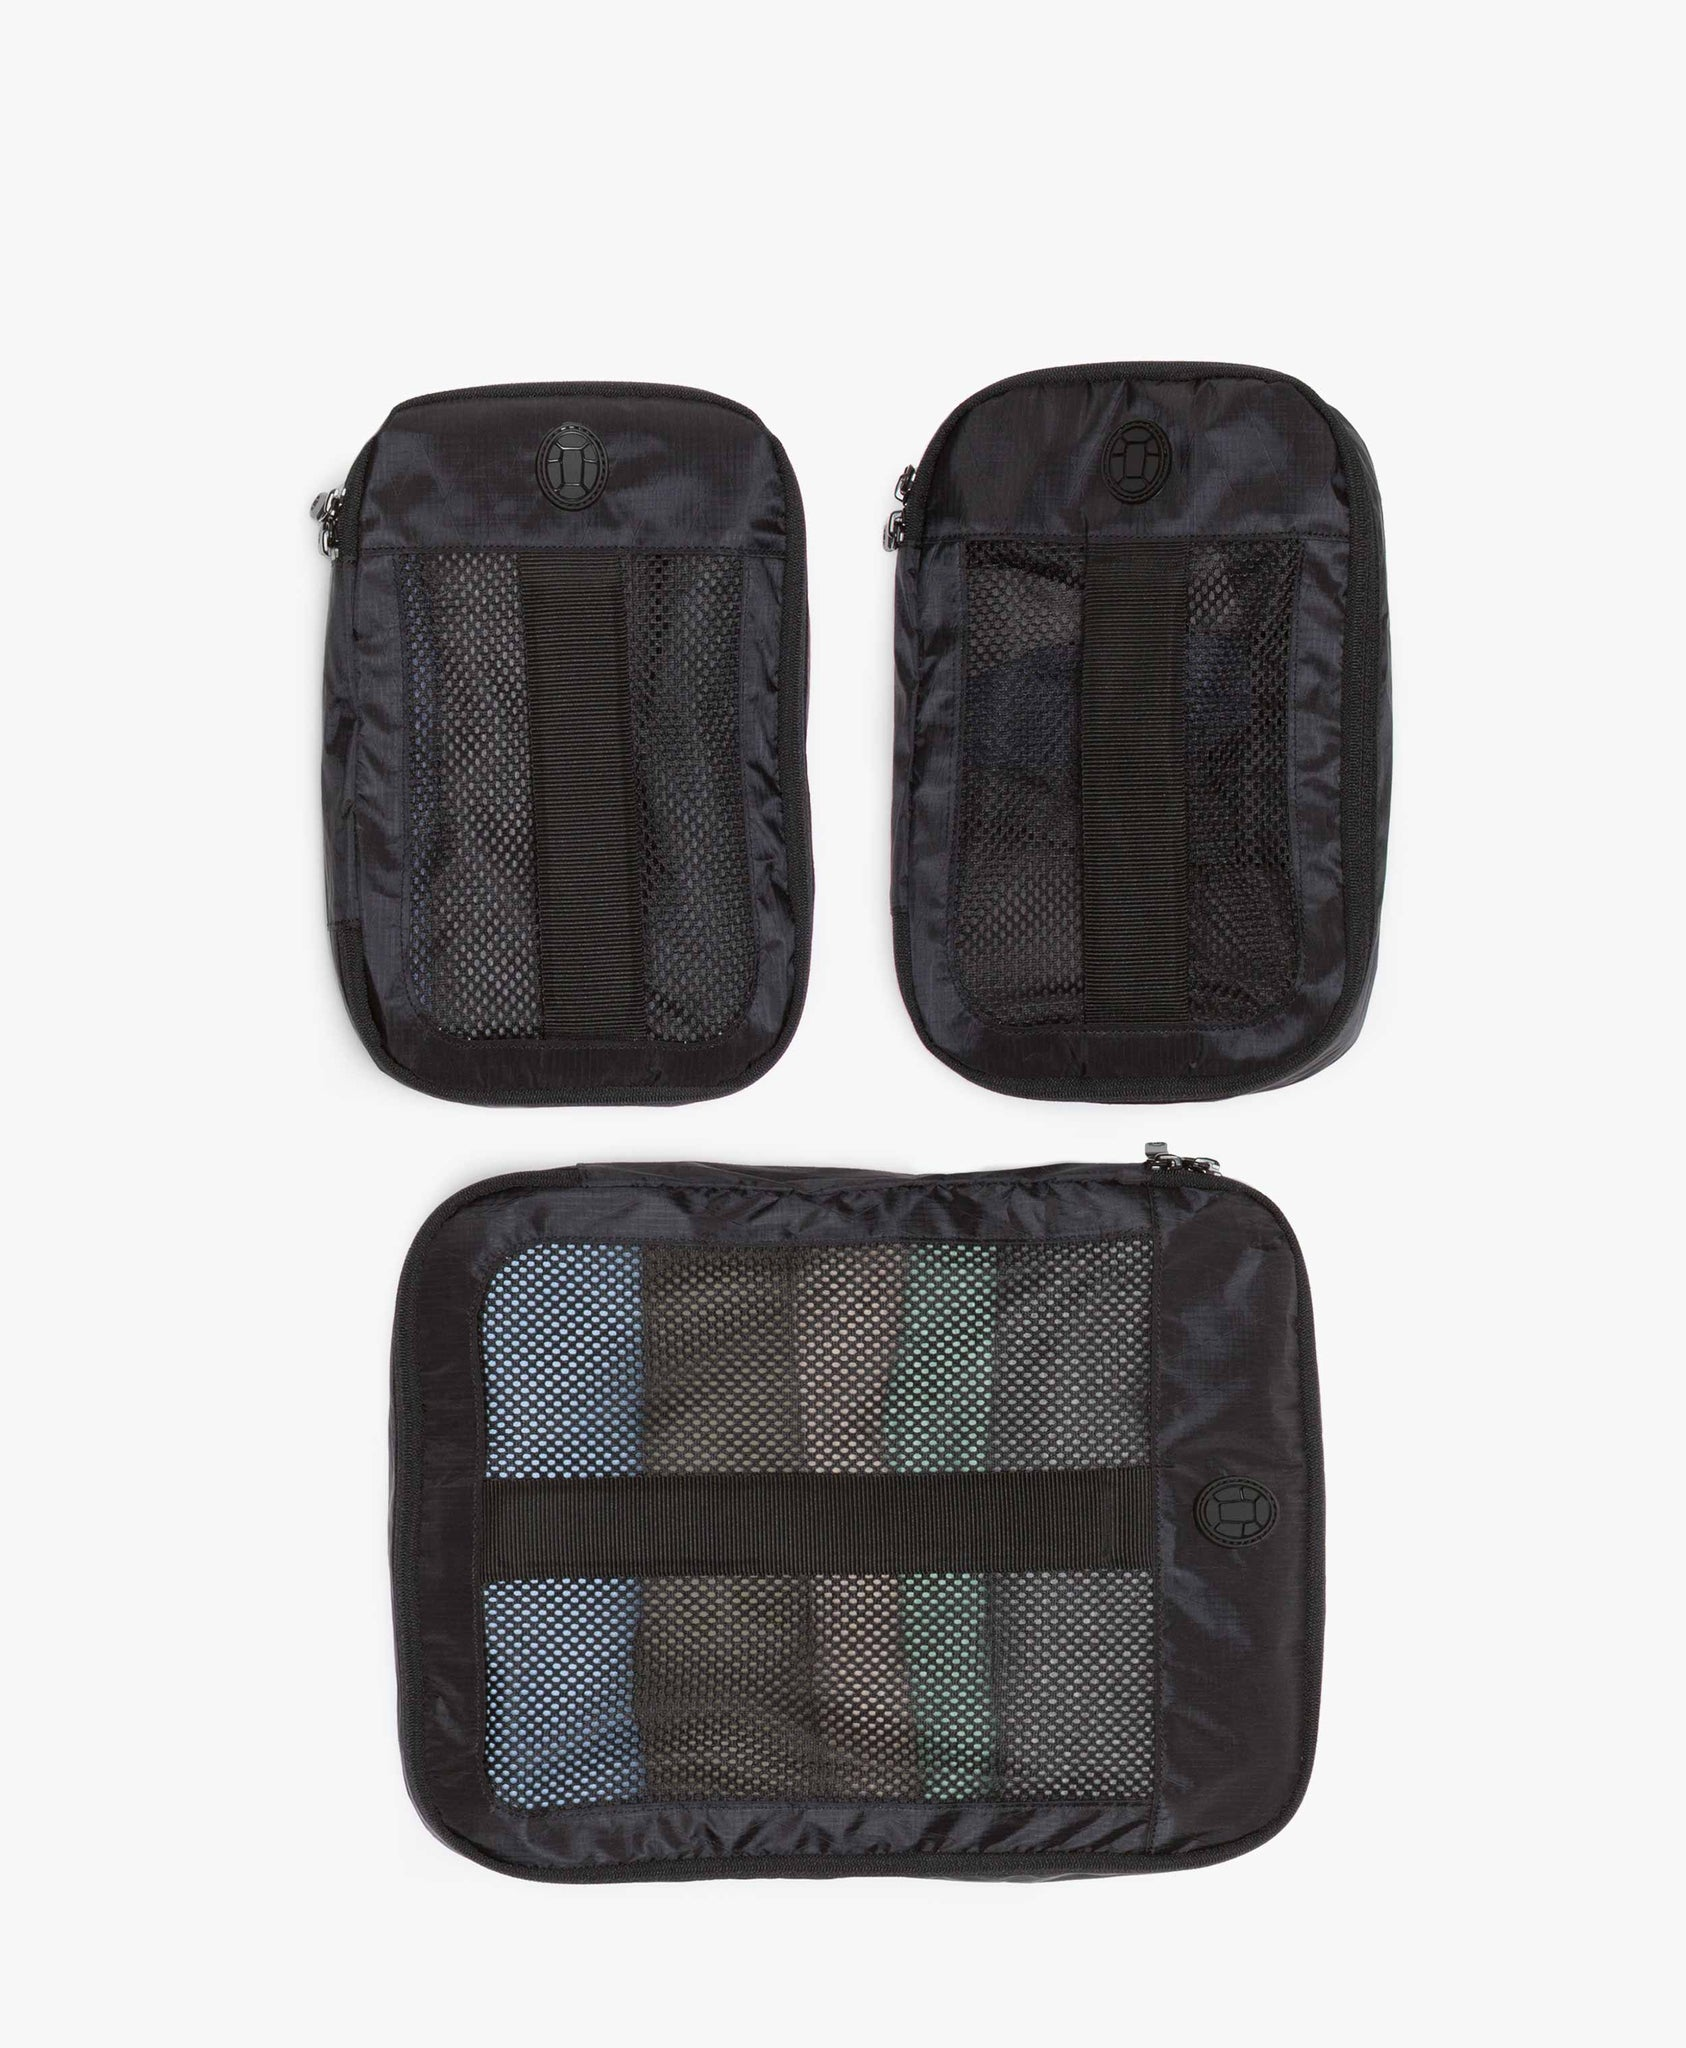 outbreaker packing cubes by tortuga. Black Bedroom Furniture Sets. Home Design Ideas